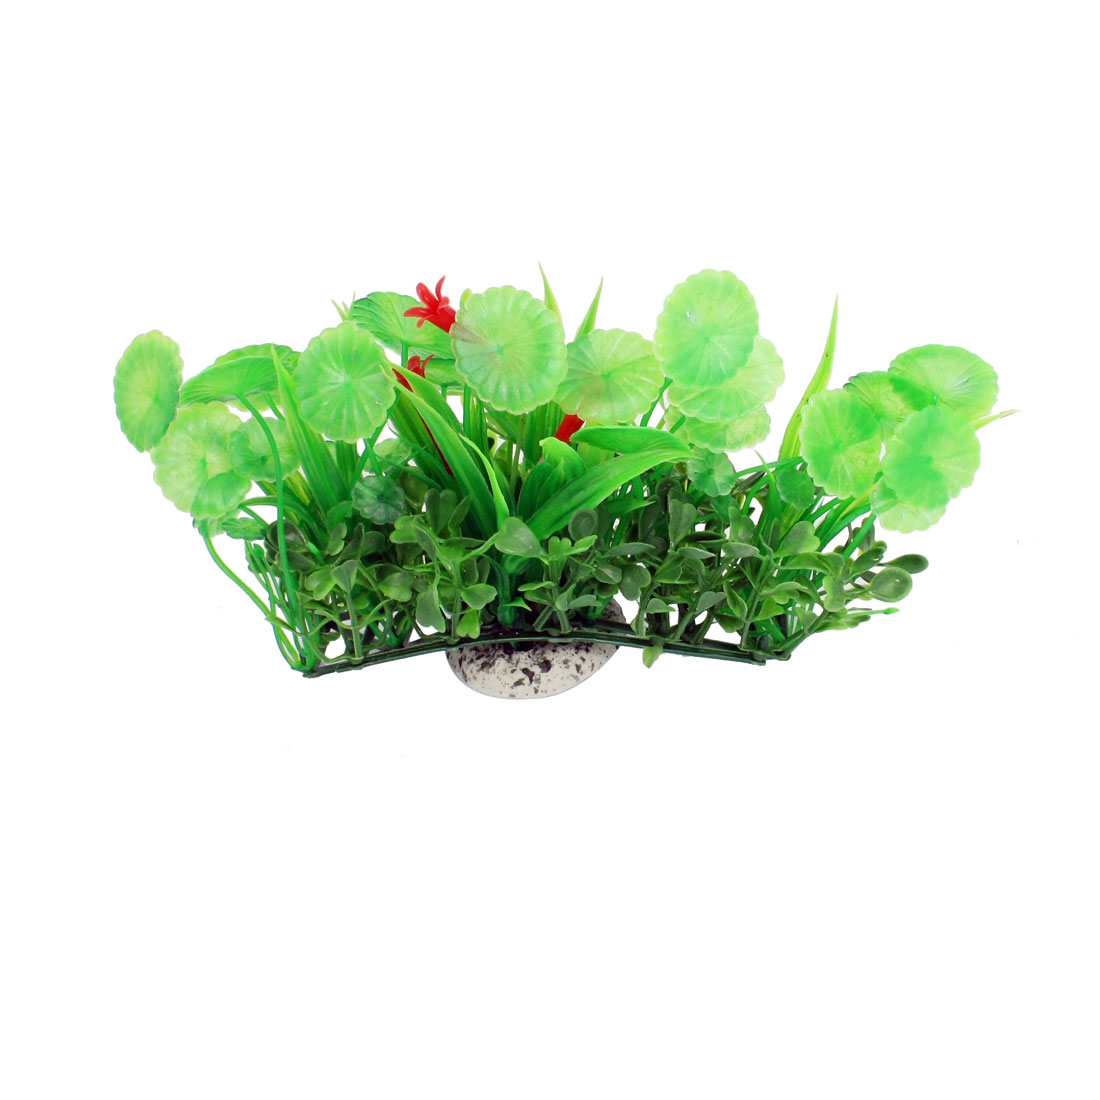 "3.5"" High Green Round Leaf Red Flower Fish Tank Simulation Aquatic Plant Decor"